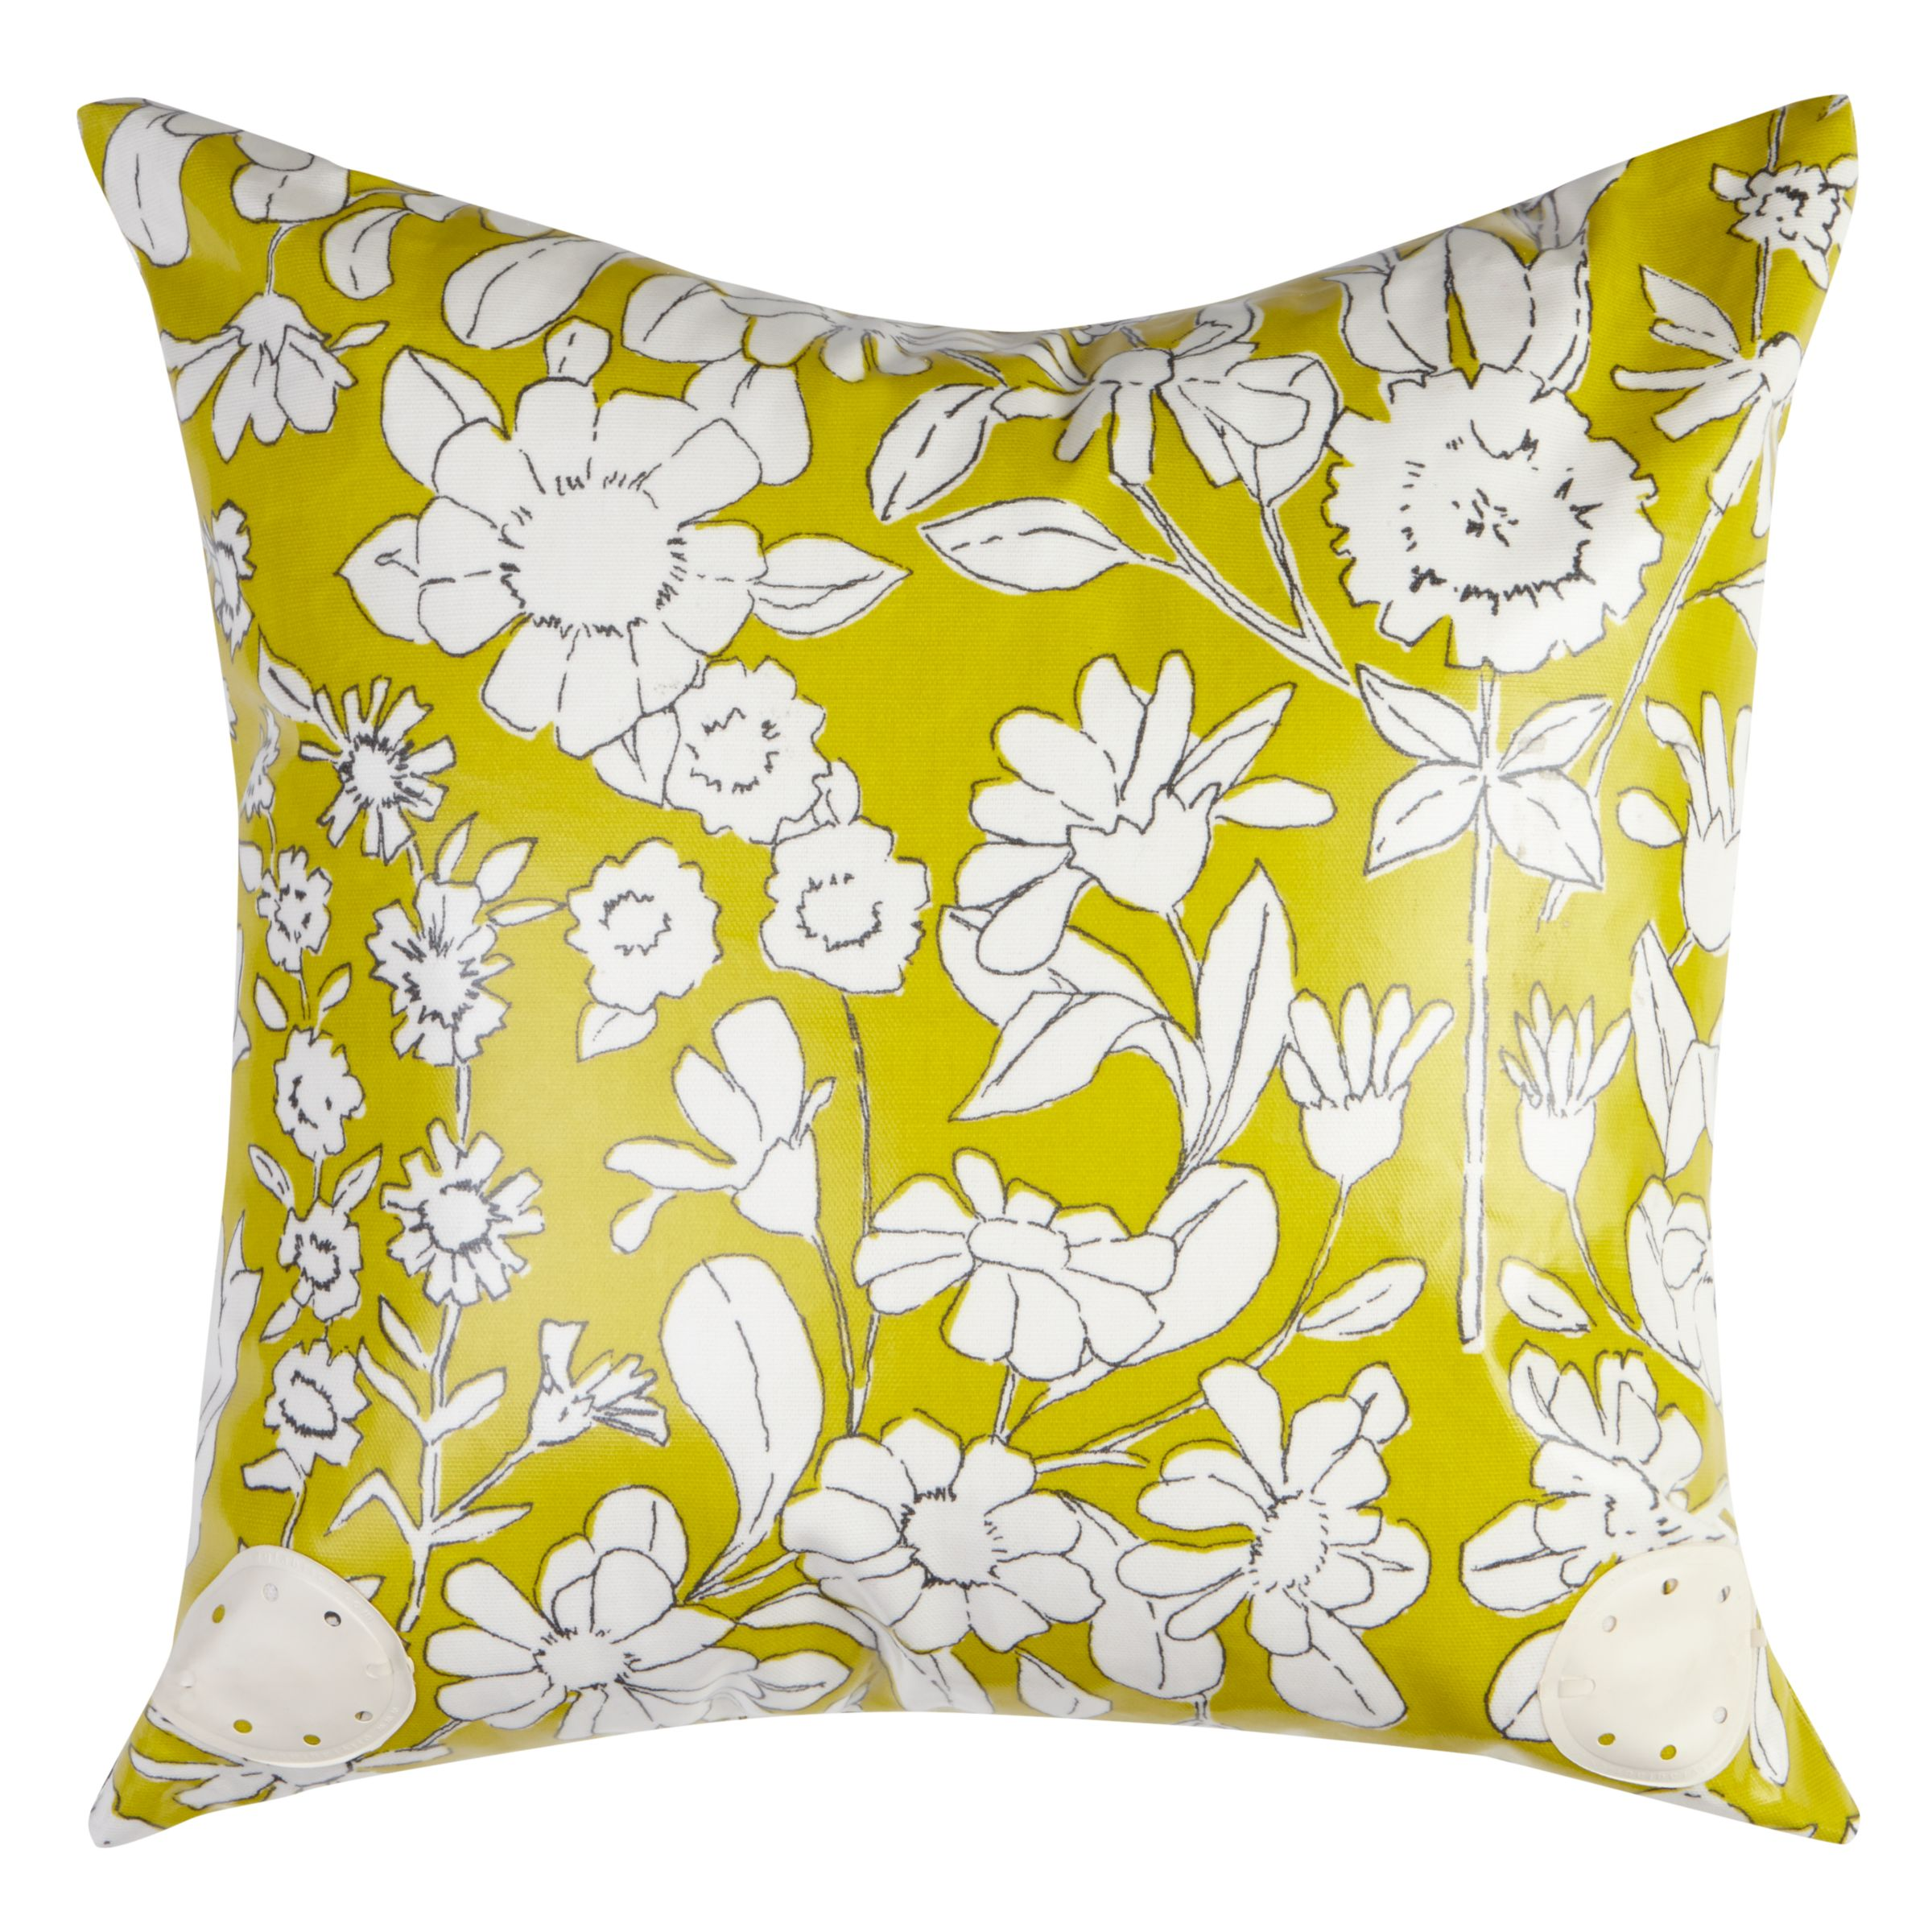 Oily Rag 150 Years Outdoor Cushion 40 x 40cm